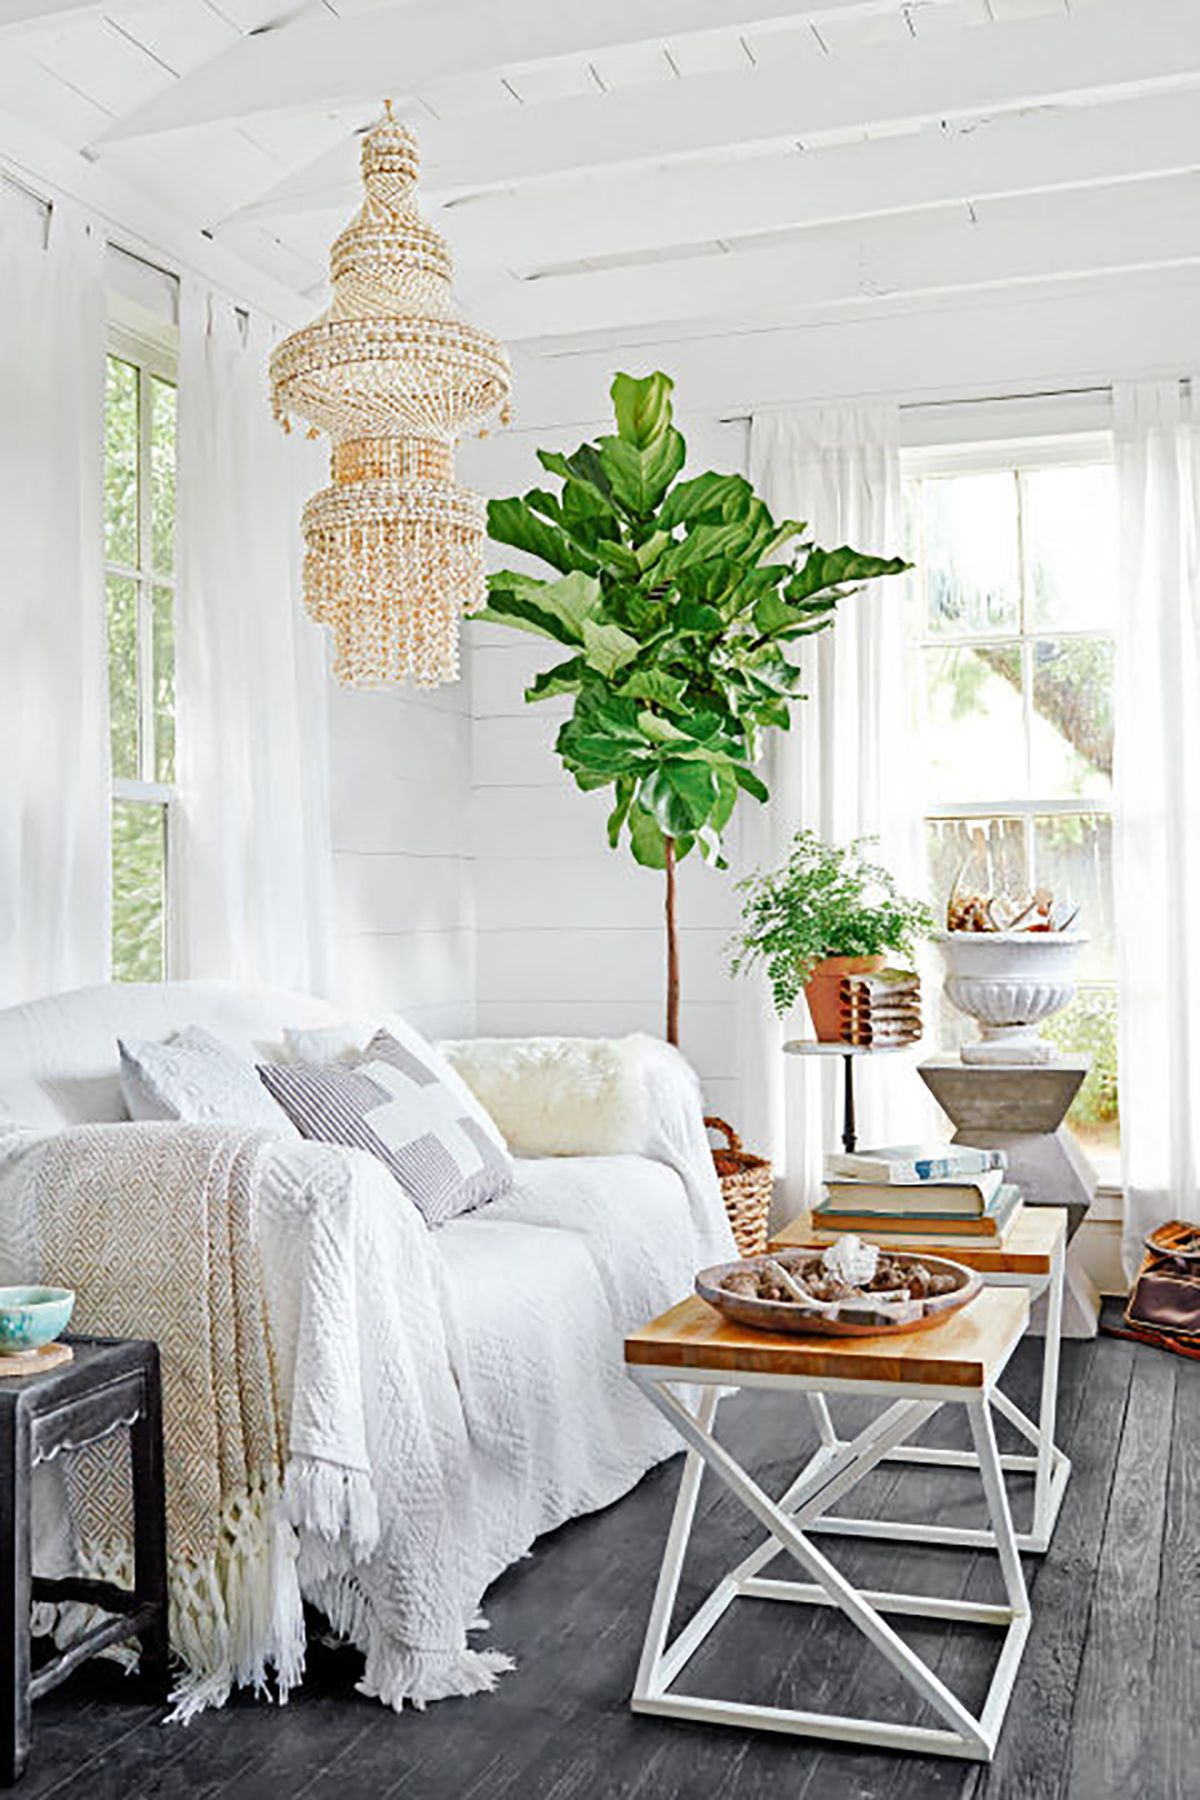 15+ White Room Ideas - Decorating Ideas for White Rooms